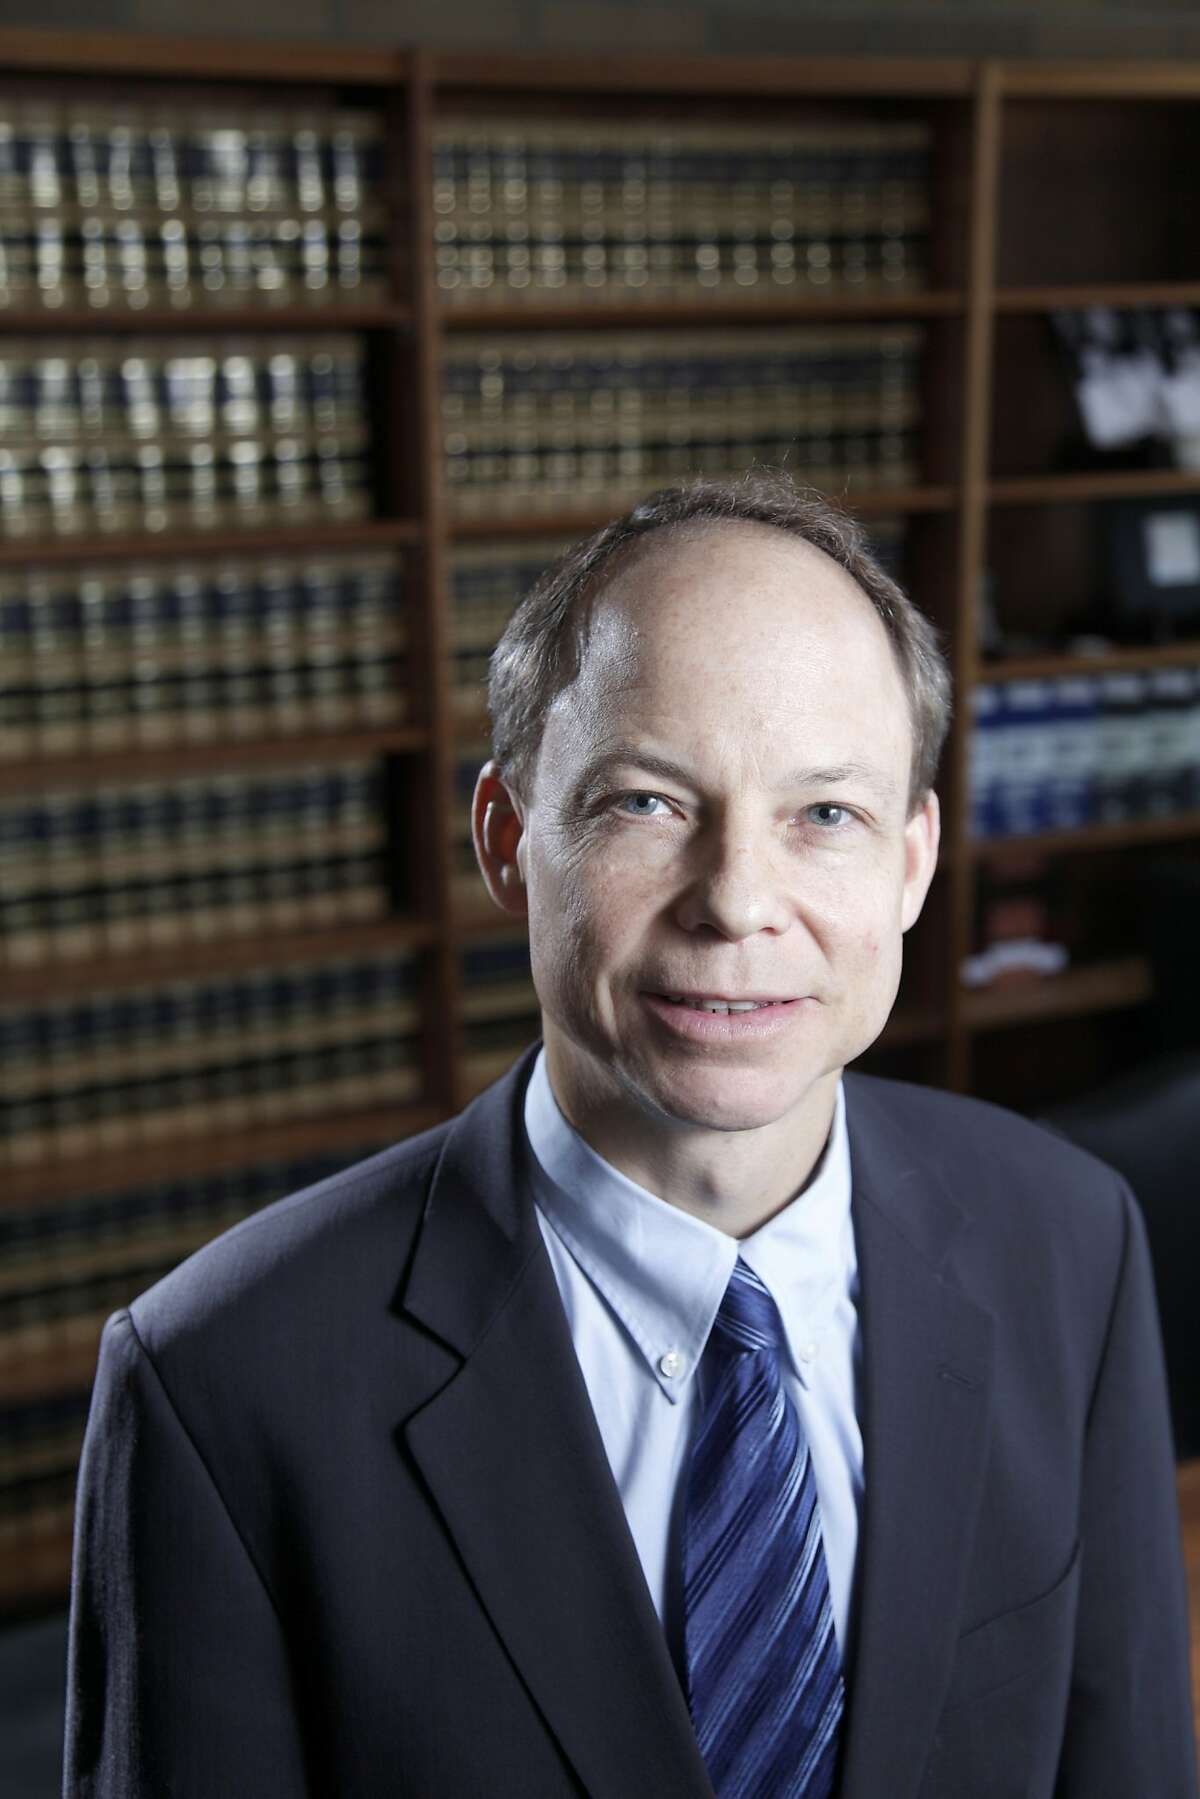 This June 27, 2011, photo shows Santa Clara County Superior Court Judge Aaron Persky, who drew criticism for sentencing former Stanford University swimmer Brock Turner to only six months in jail for sexually assaulting an unconscious woman. The swimmer's father, Dan Turner, ignited more outrage by writing in a letter to the judge that his son already has paid a steep price for